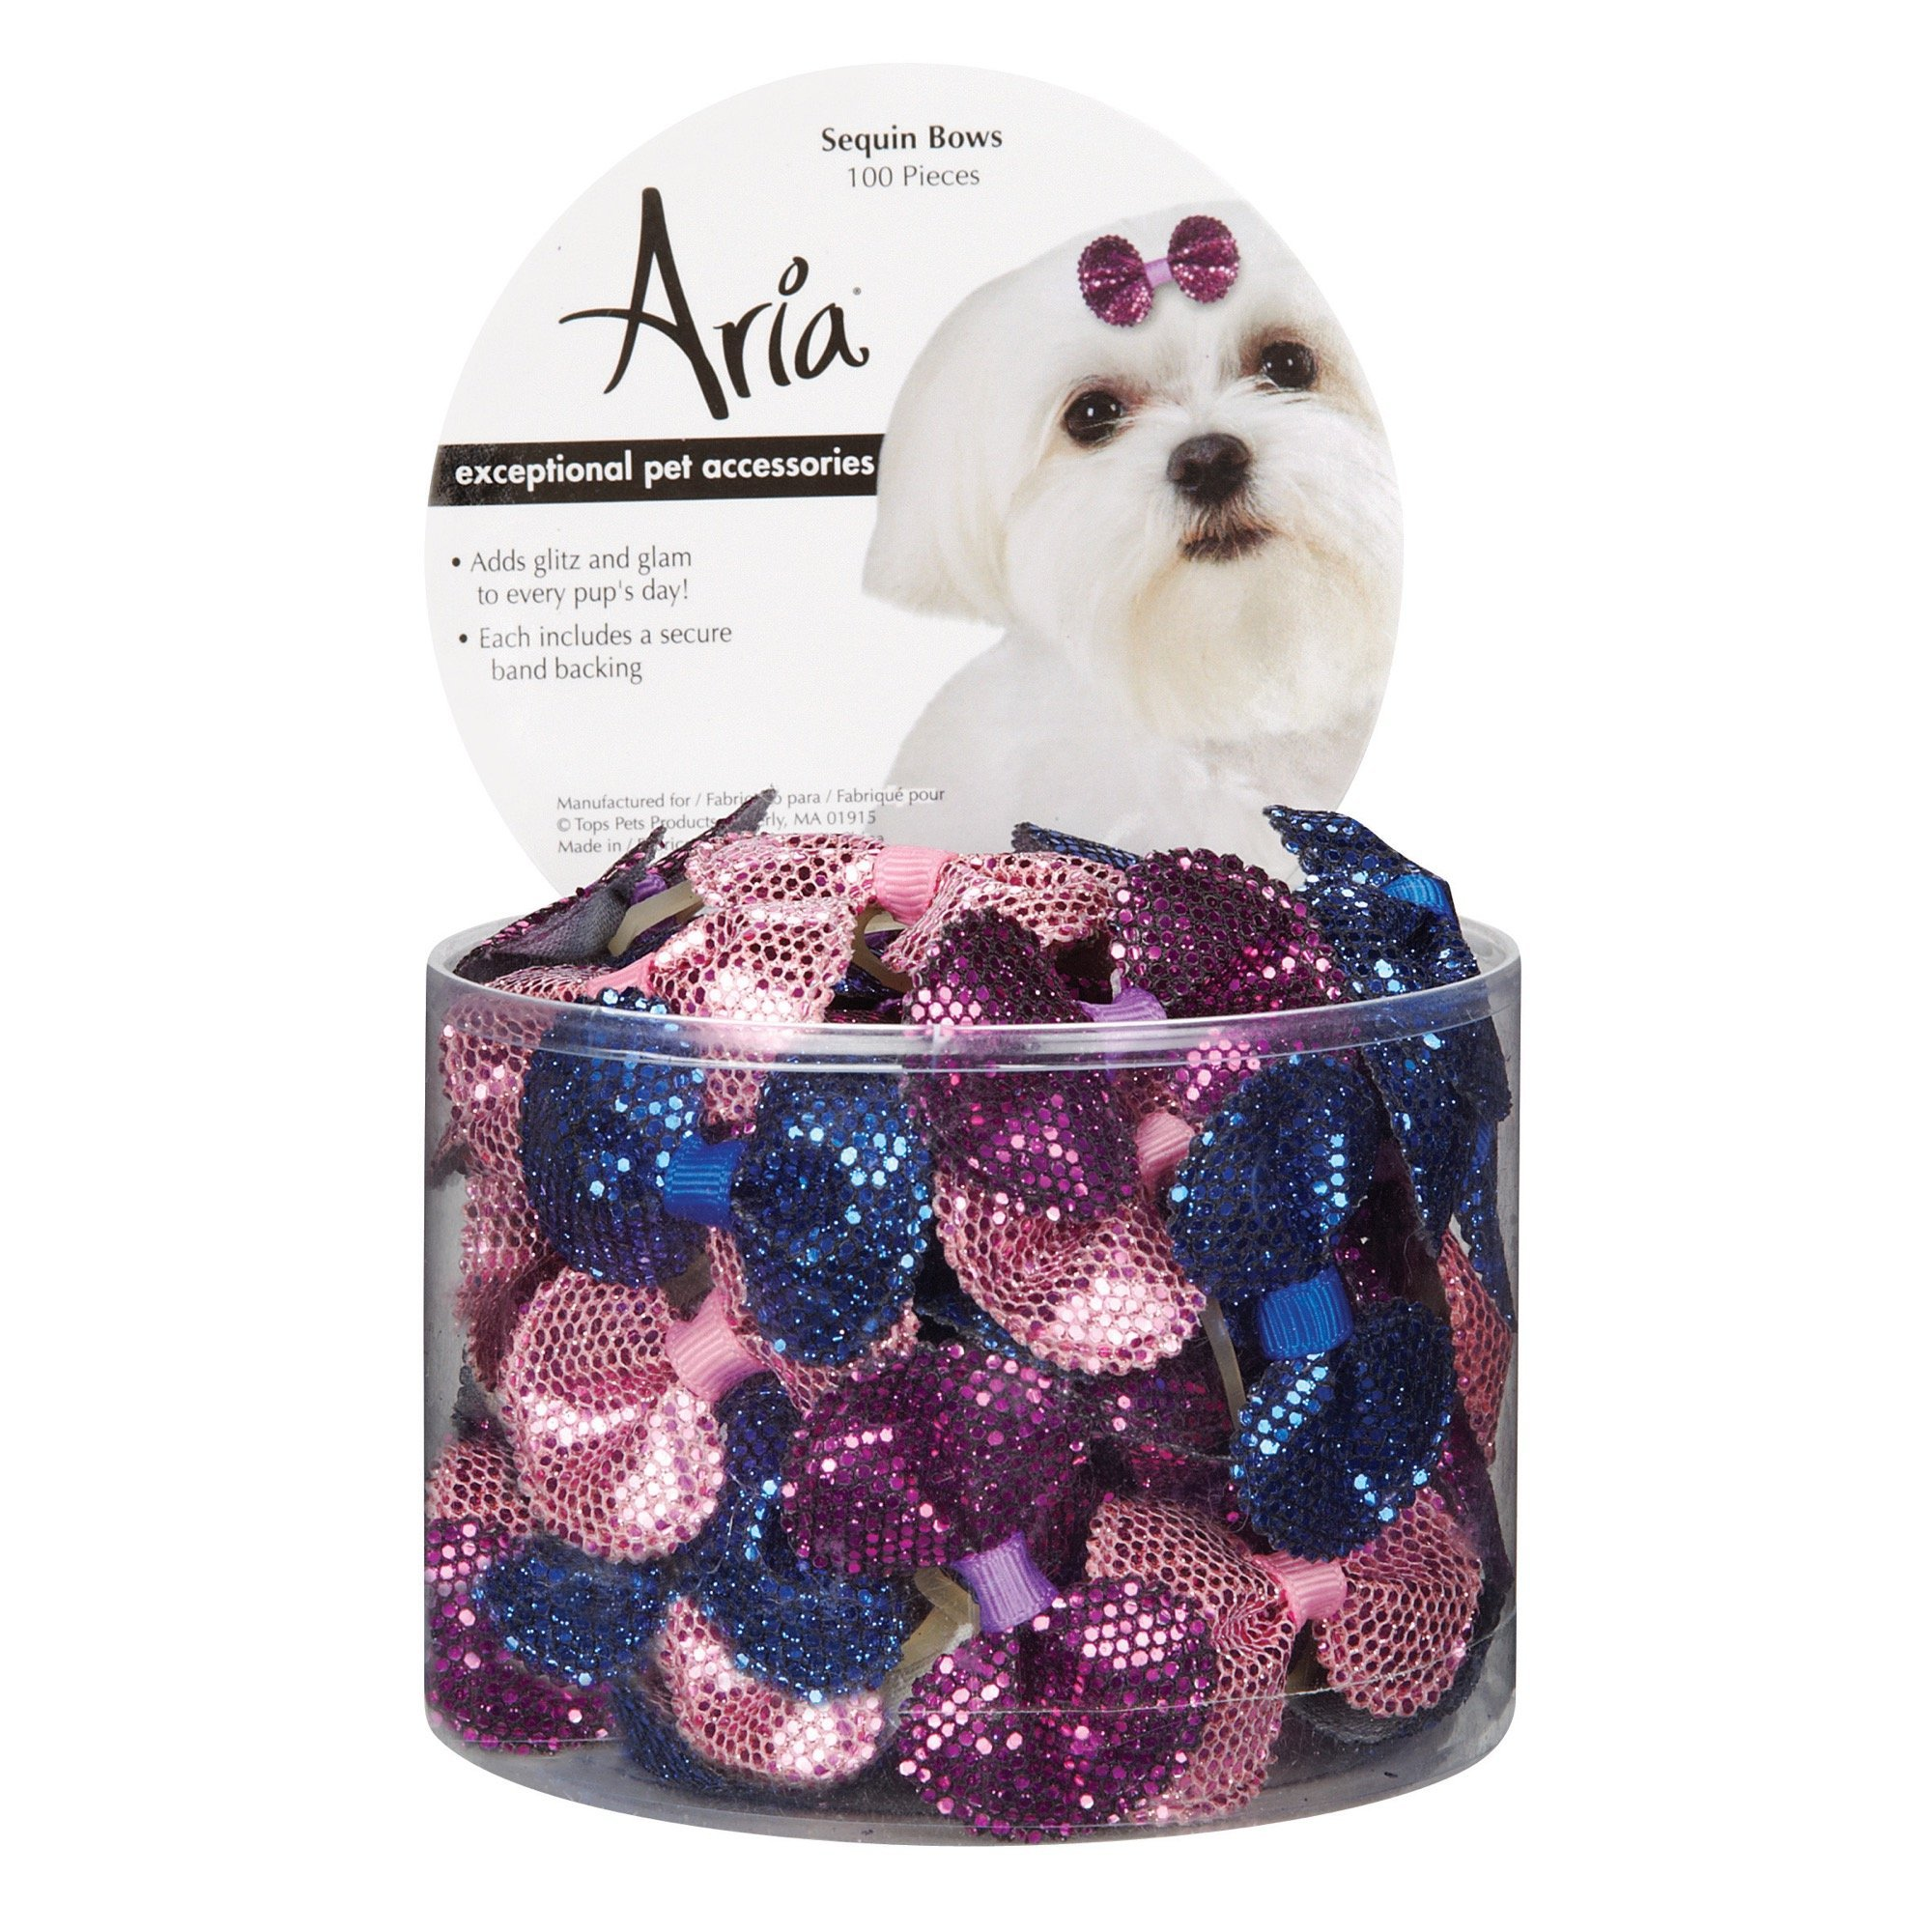 Aria Sequin Bows for Dogs, 100-Piece Canisters by Aria